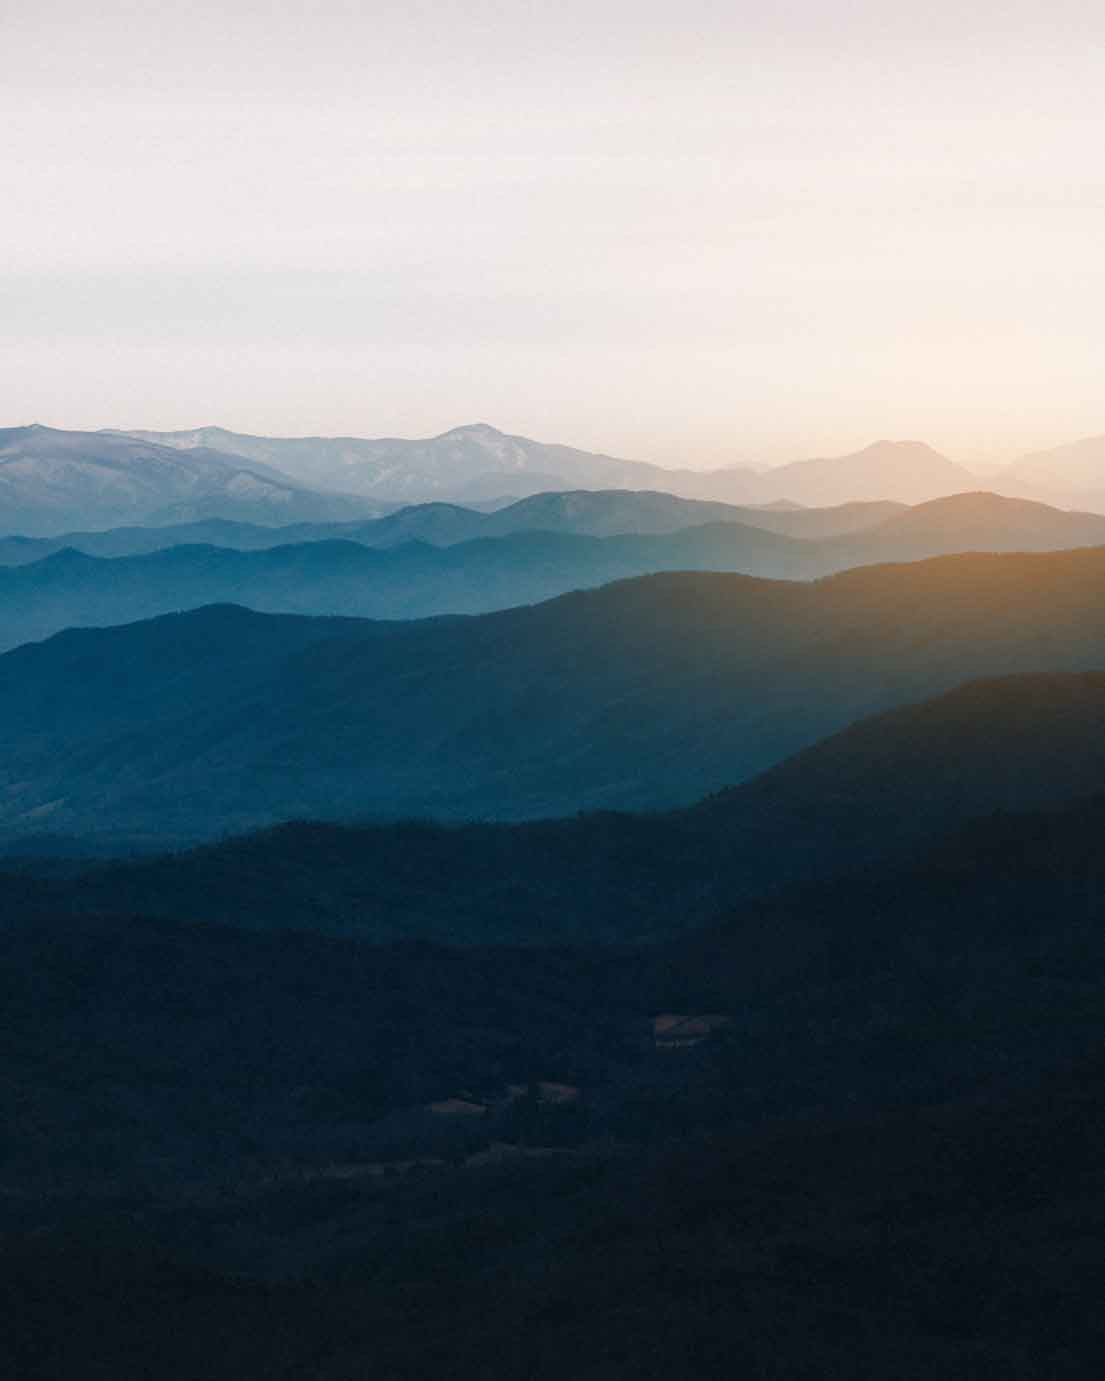 Artistic photo of view over range of hills at sunrise